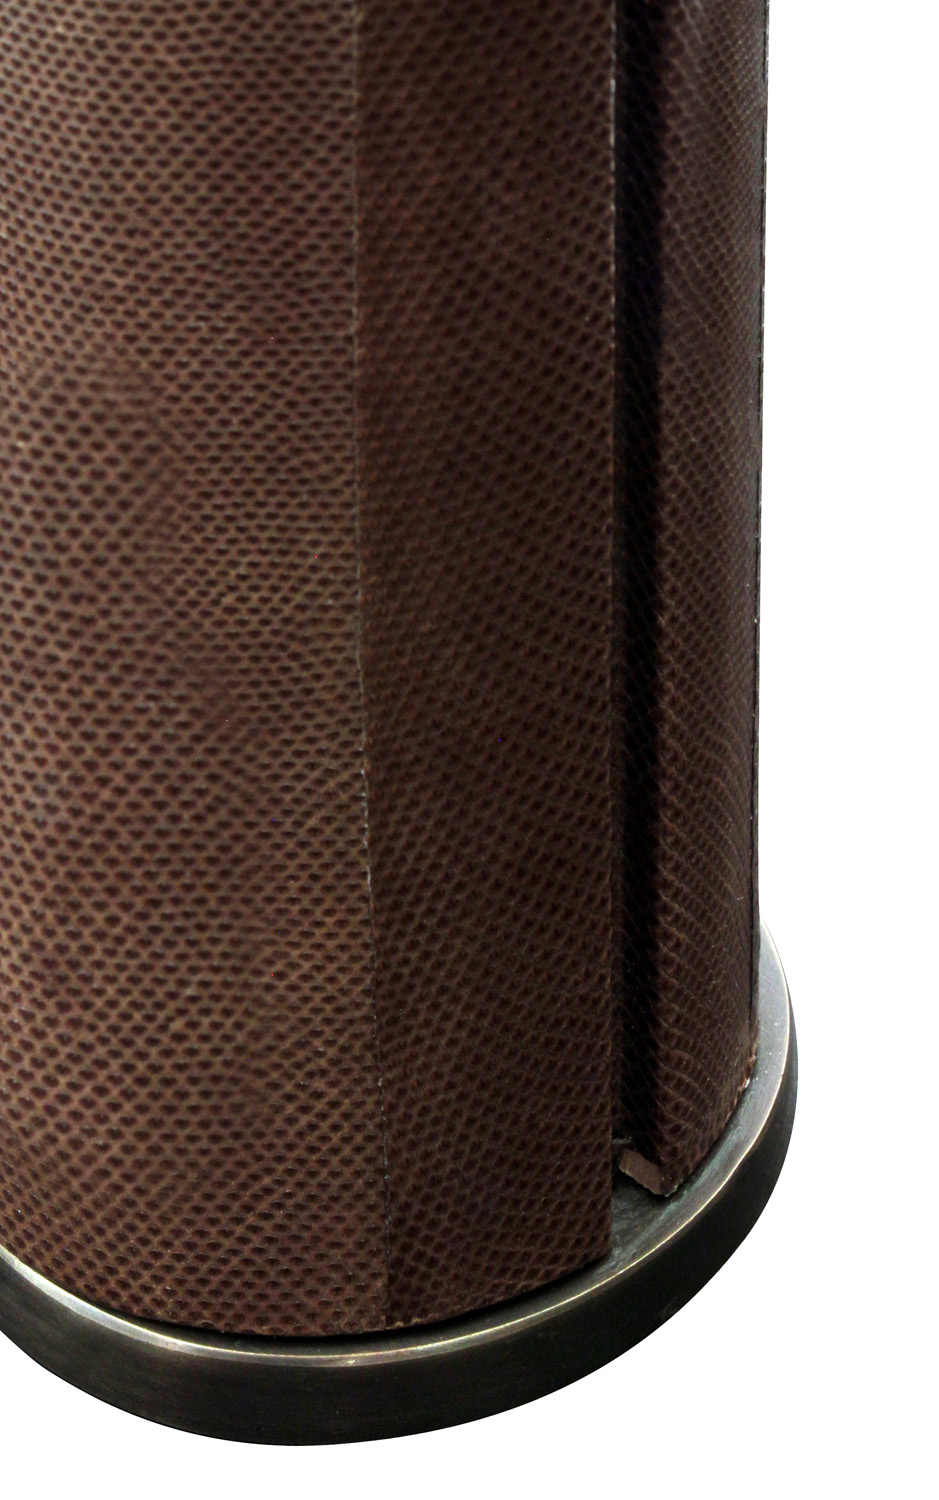 Springer 55 brown whipsnake bronz tablelamp144 detail2 hires.jpg